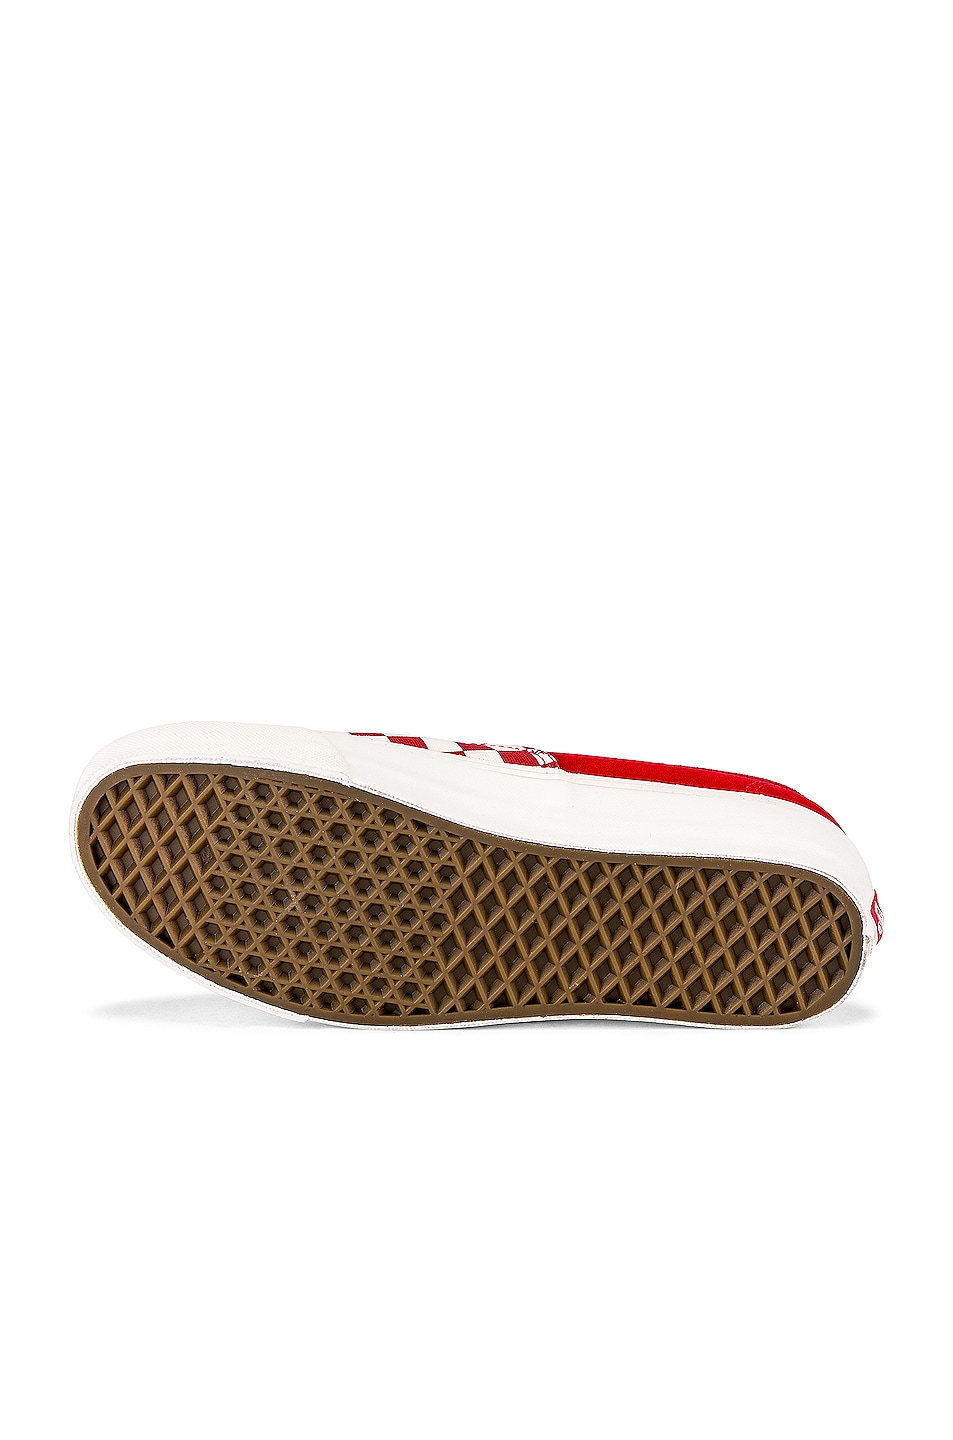 Image 6 of Vans Vault OG Authentic LX in Racing Red & Checkerboard